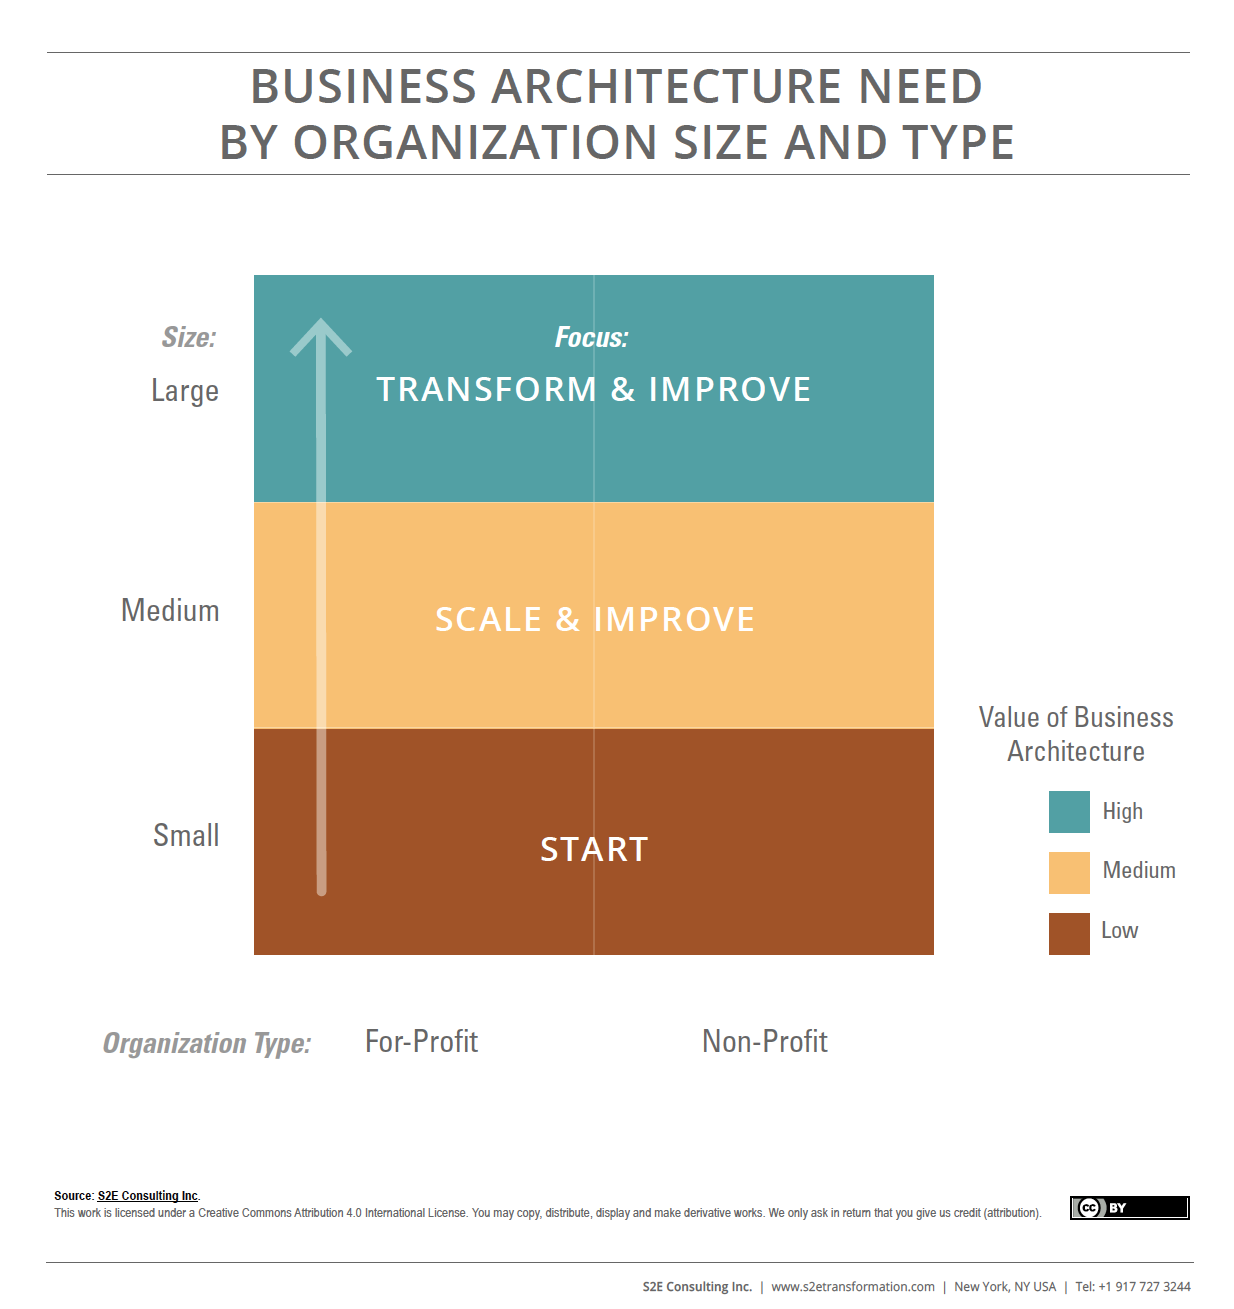 Business Architecture Need By Organization Size & Type